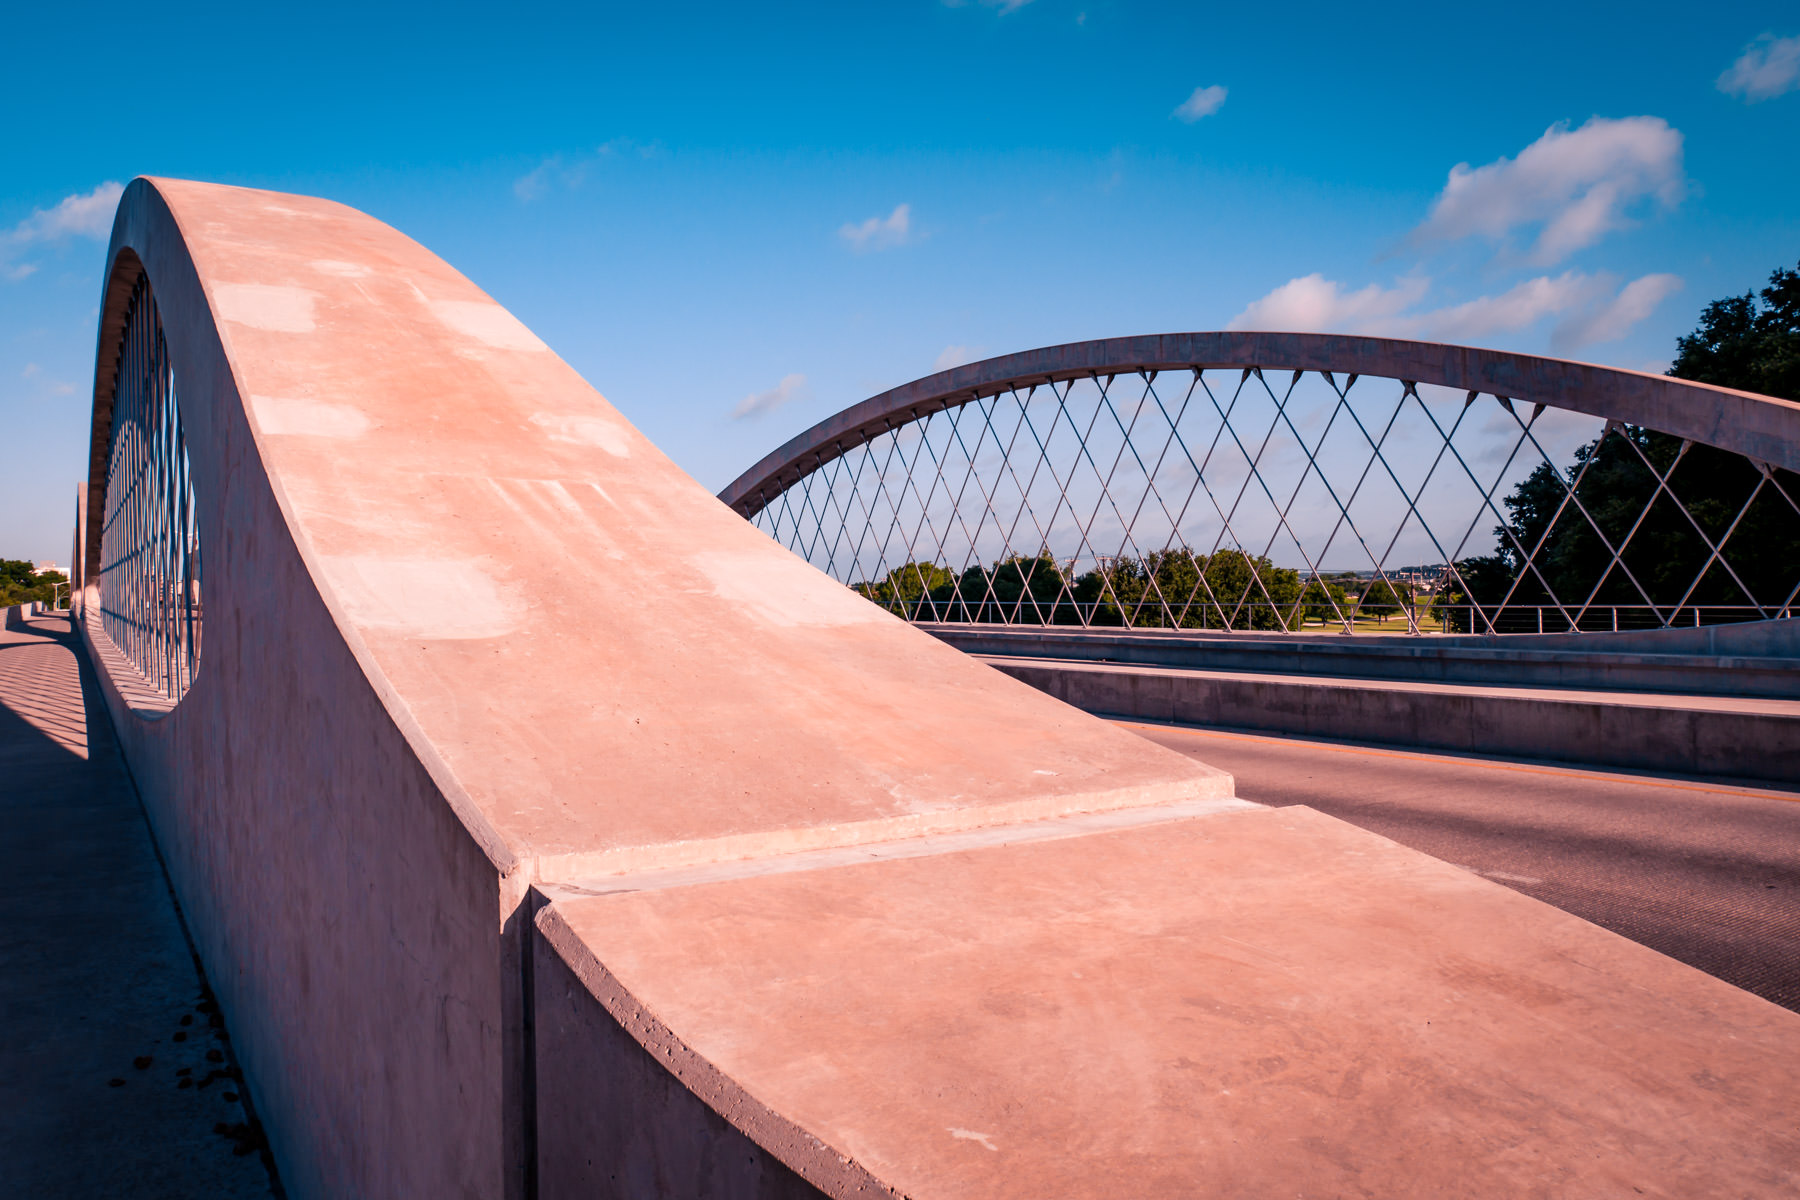 The arches of Fort Worth, Texas' iconic West Seventh Street Bridge rise and dip inthe North Texas sky.